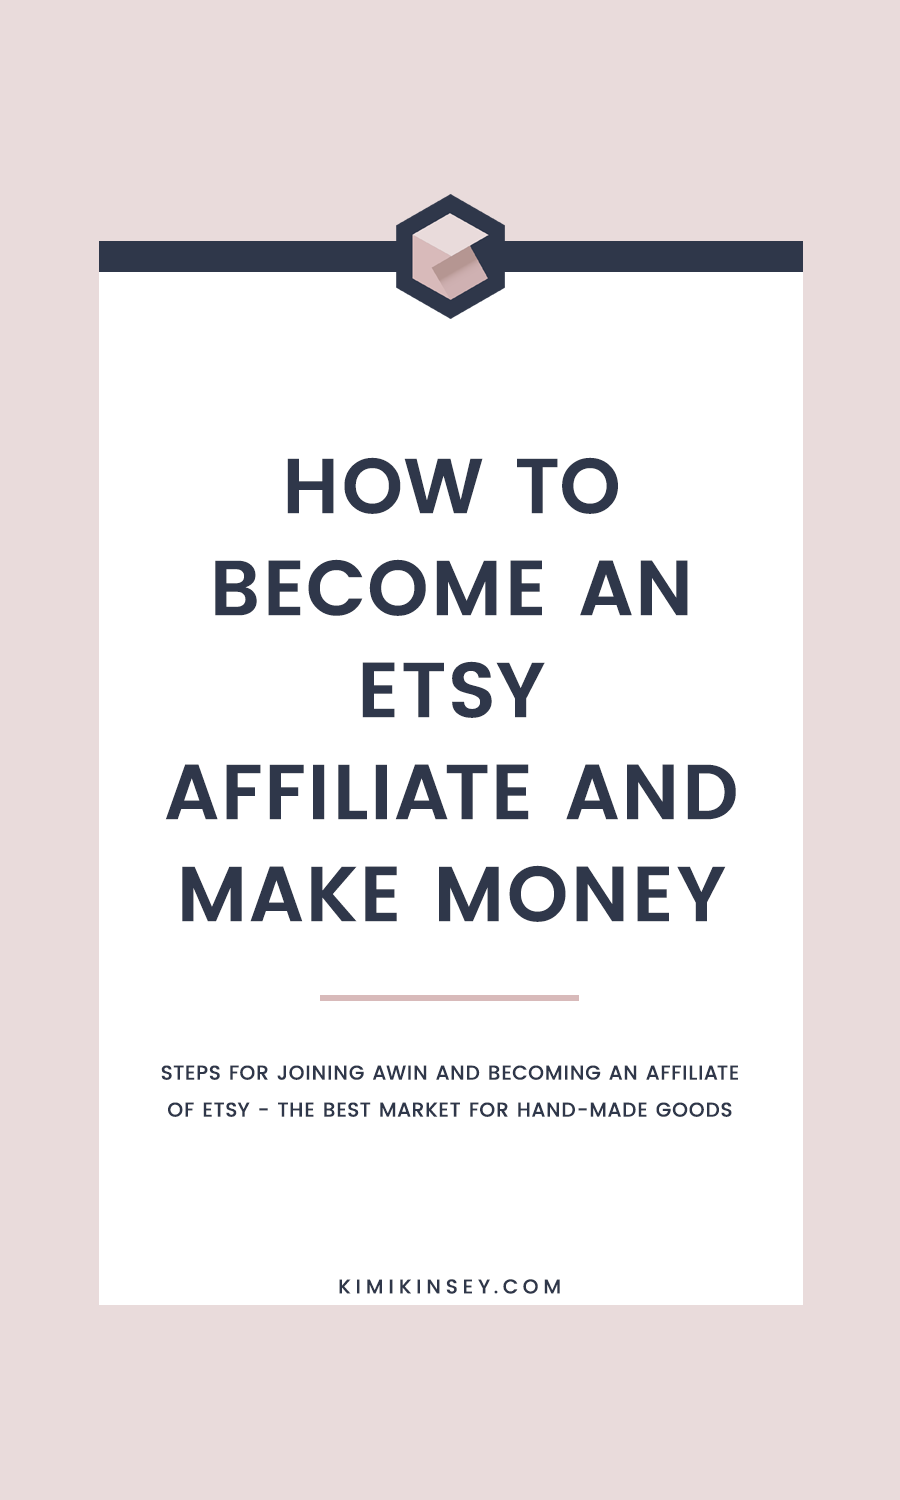 How to join the Etsy affiliate program